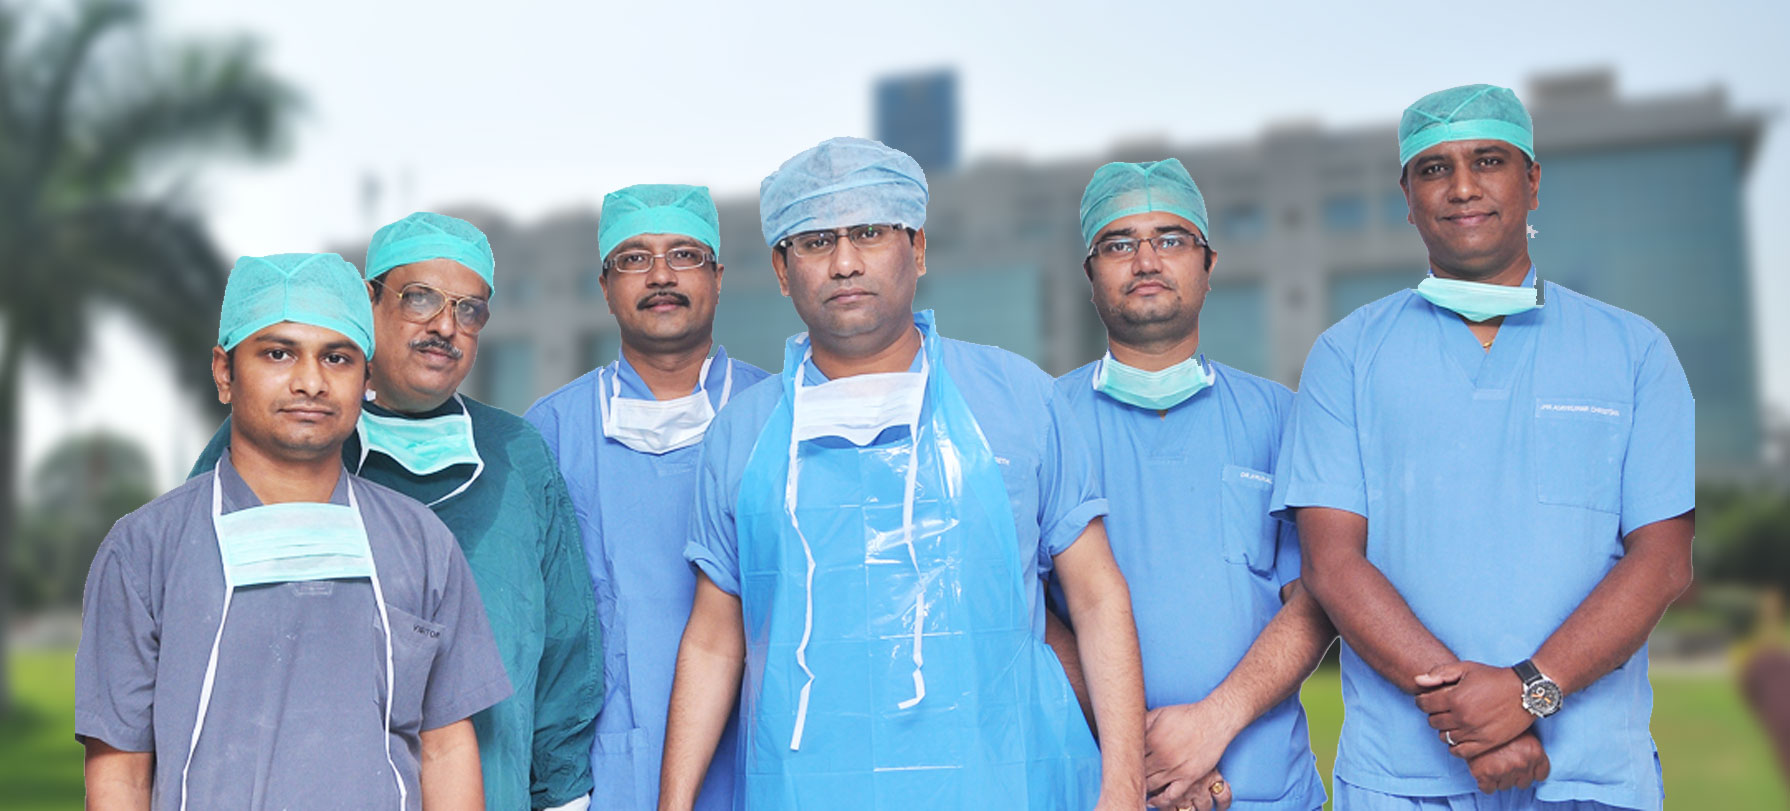 Specialist Of Heart Surgery In India Classy Heart Care